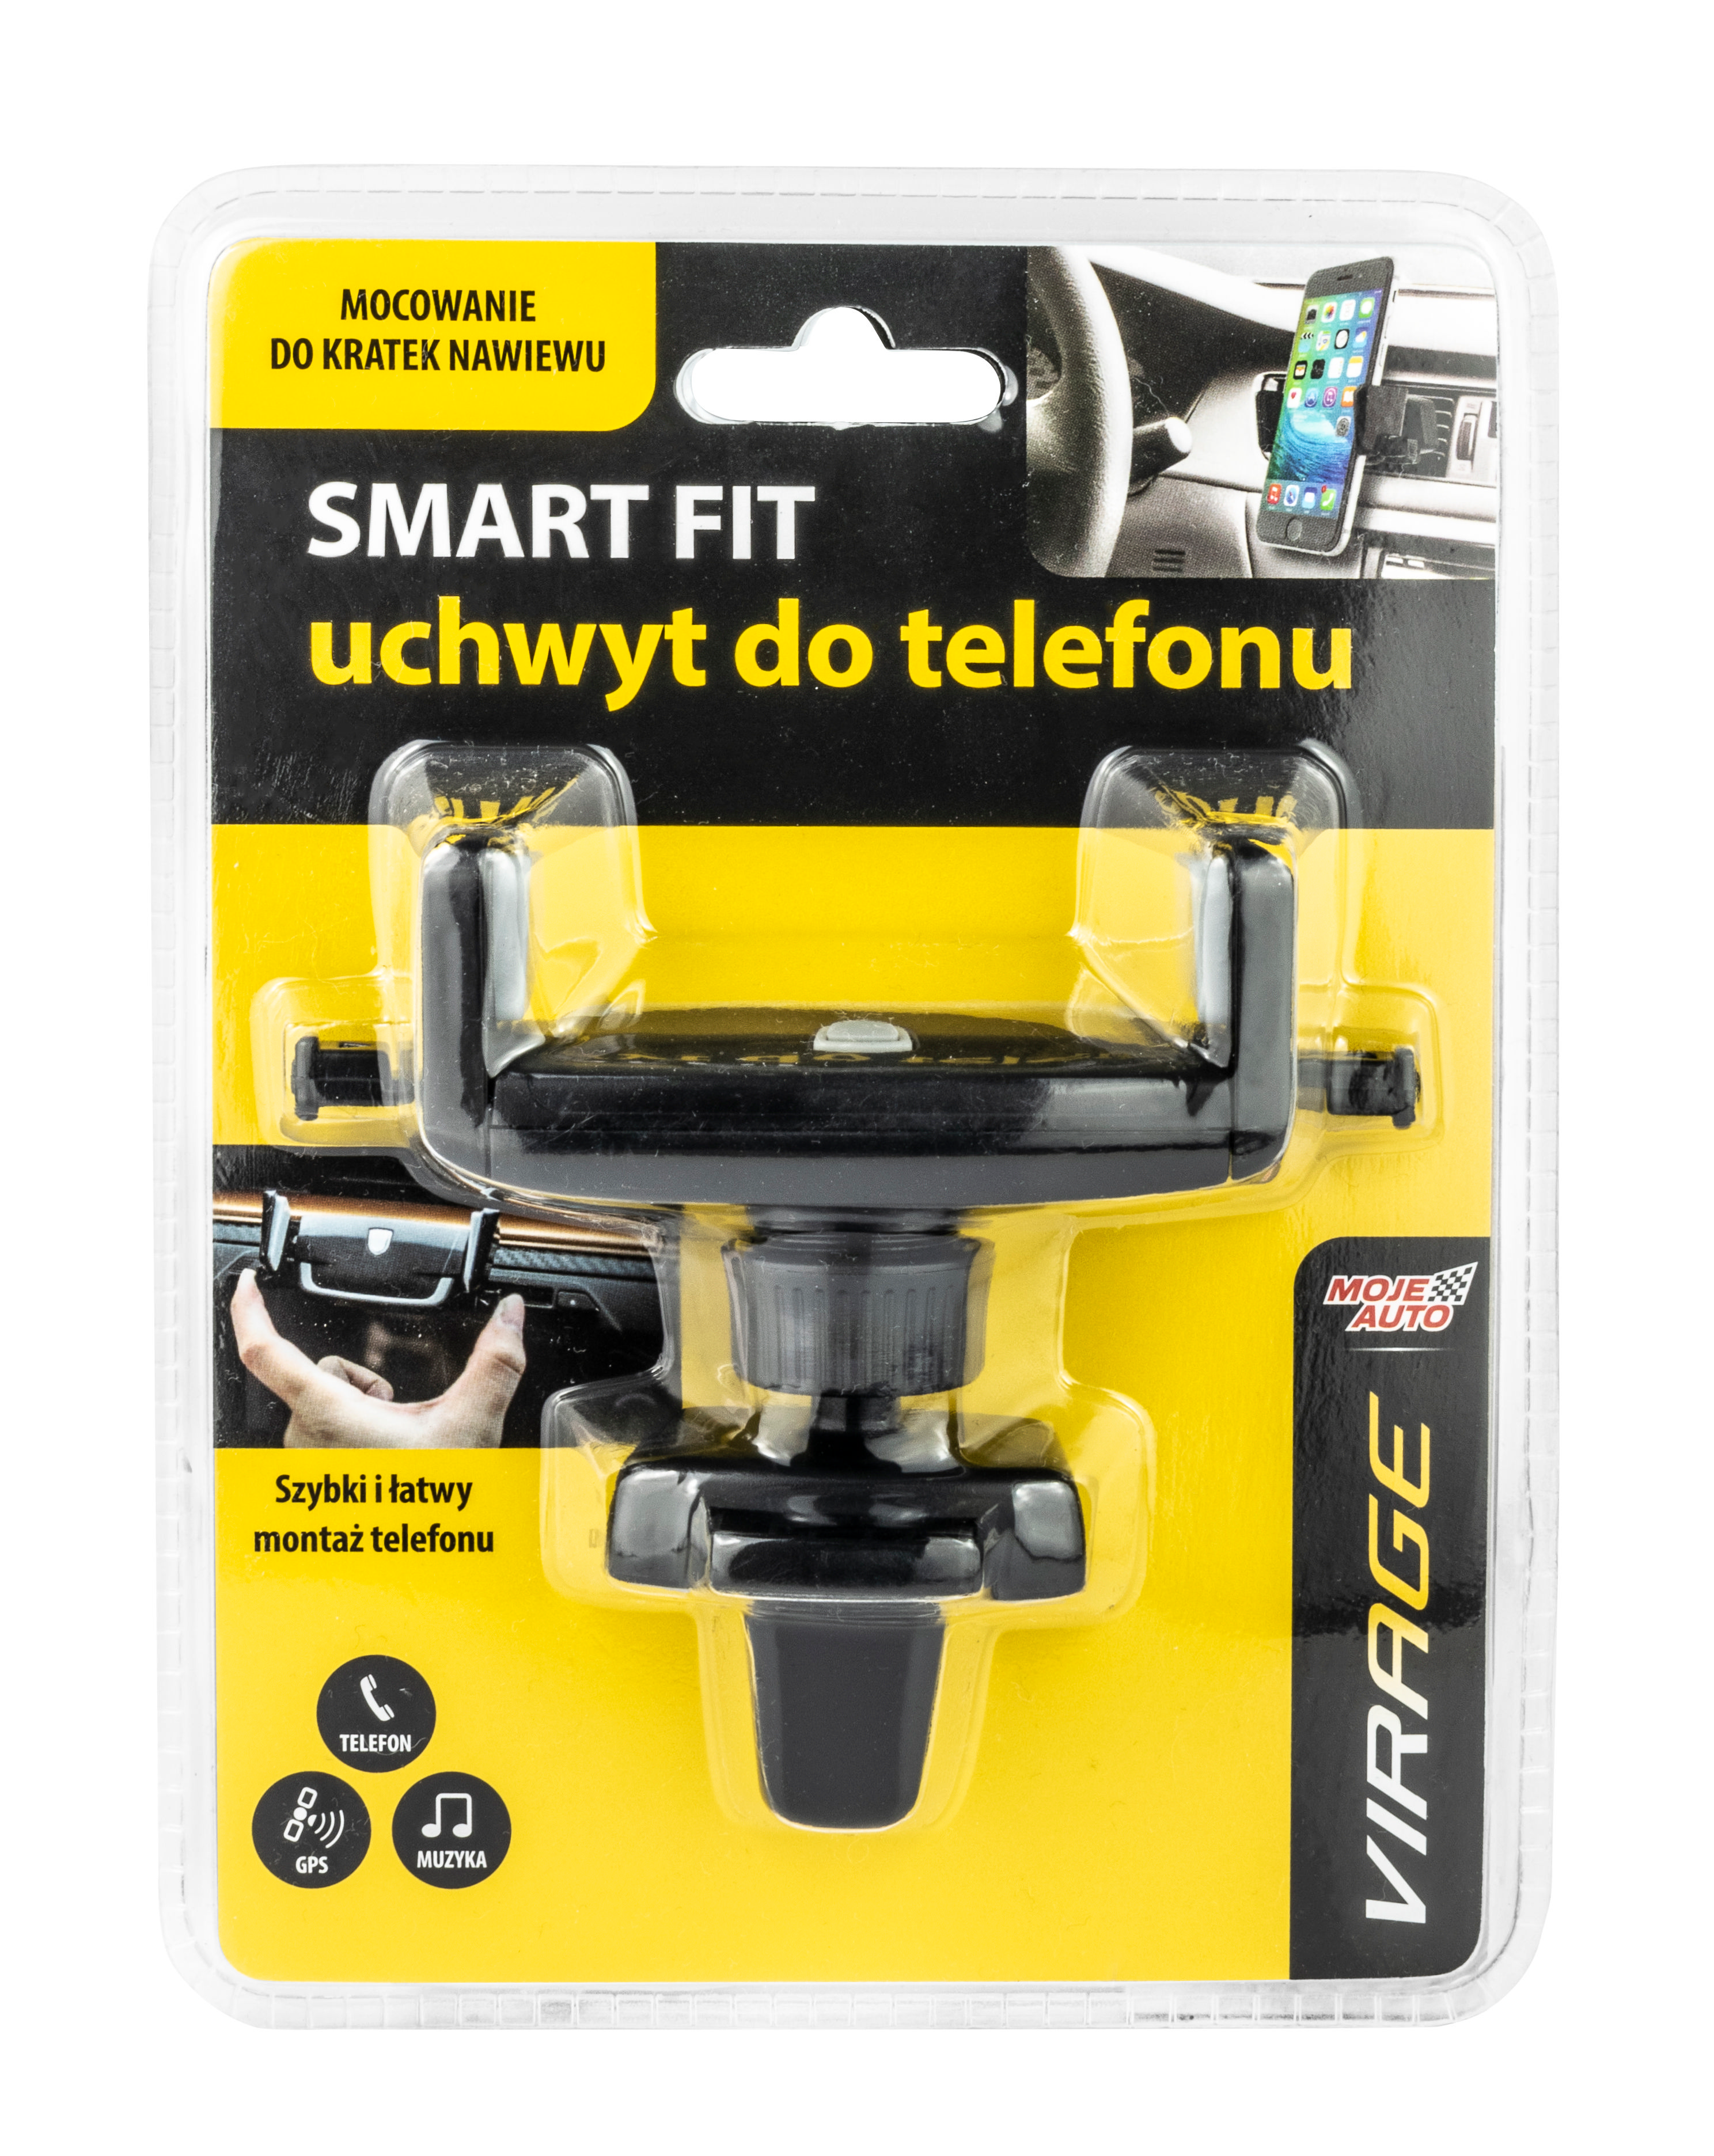 93 040 Uchwyt Do Telefonu Smart Fit